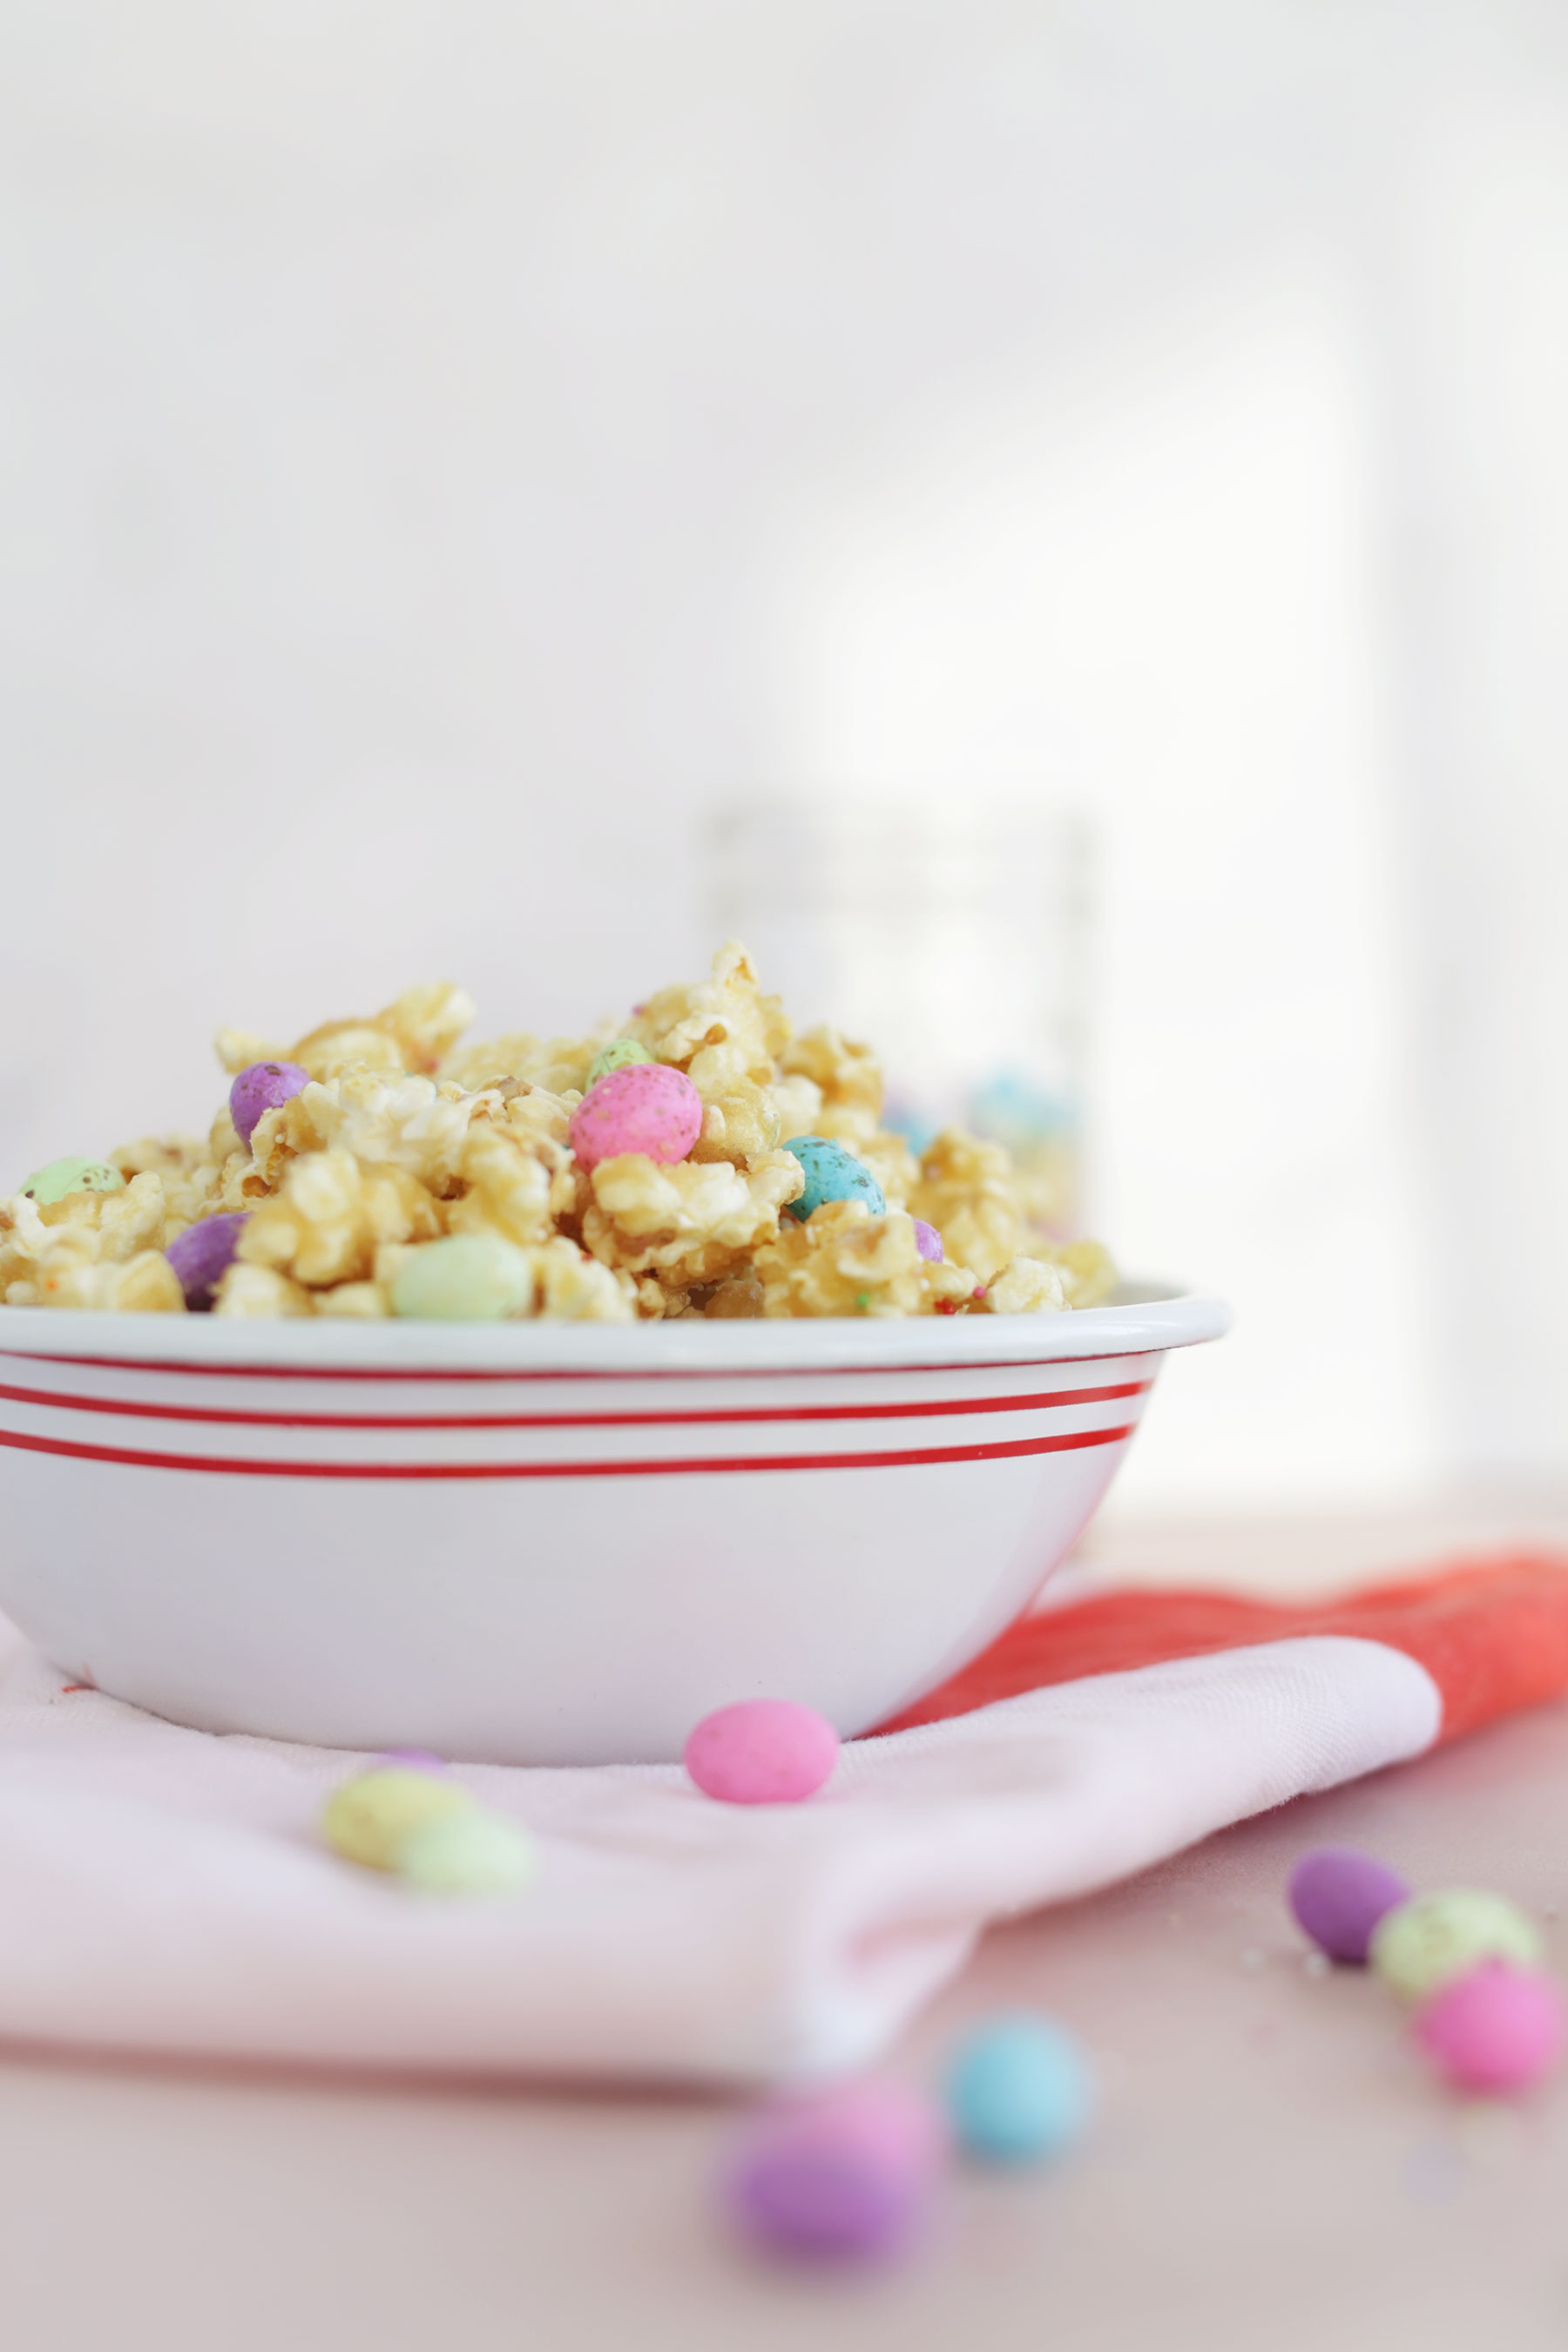 Caramel-Popcorn-with-speckled-eggs-and-sprinkles-10